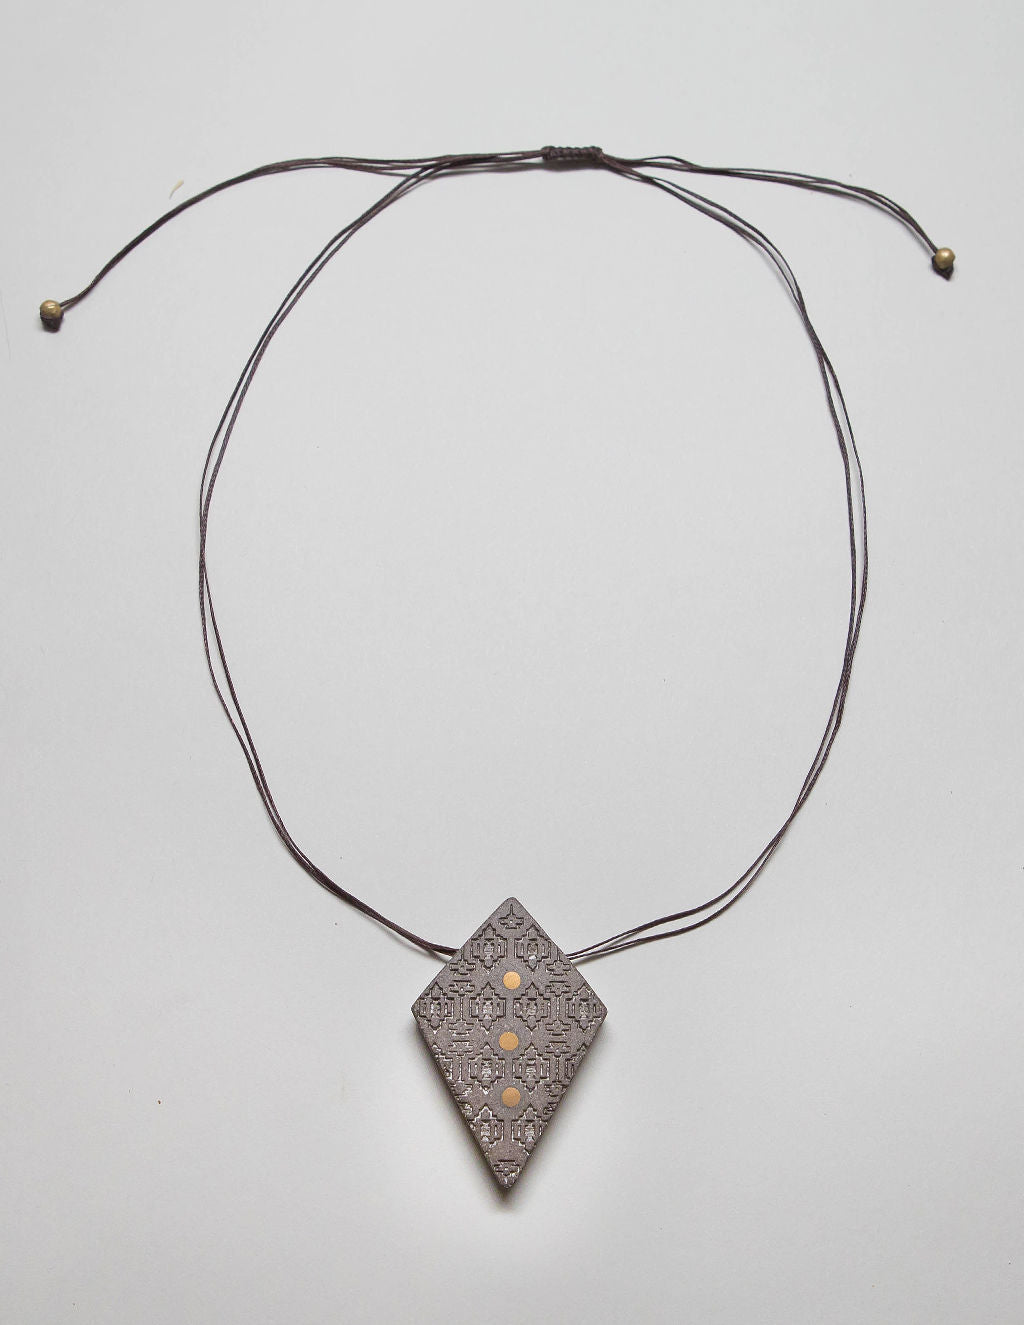 Yomo Studio rhombus dots necklace. Materials include: concrete, brass, metal beads, and wax string.